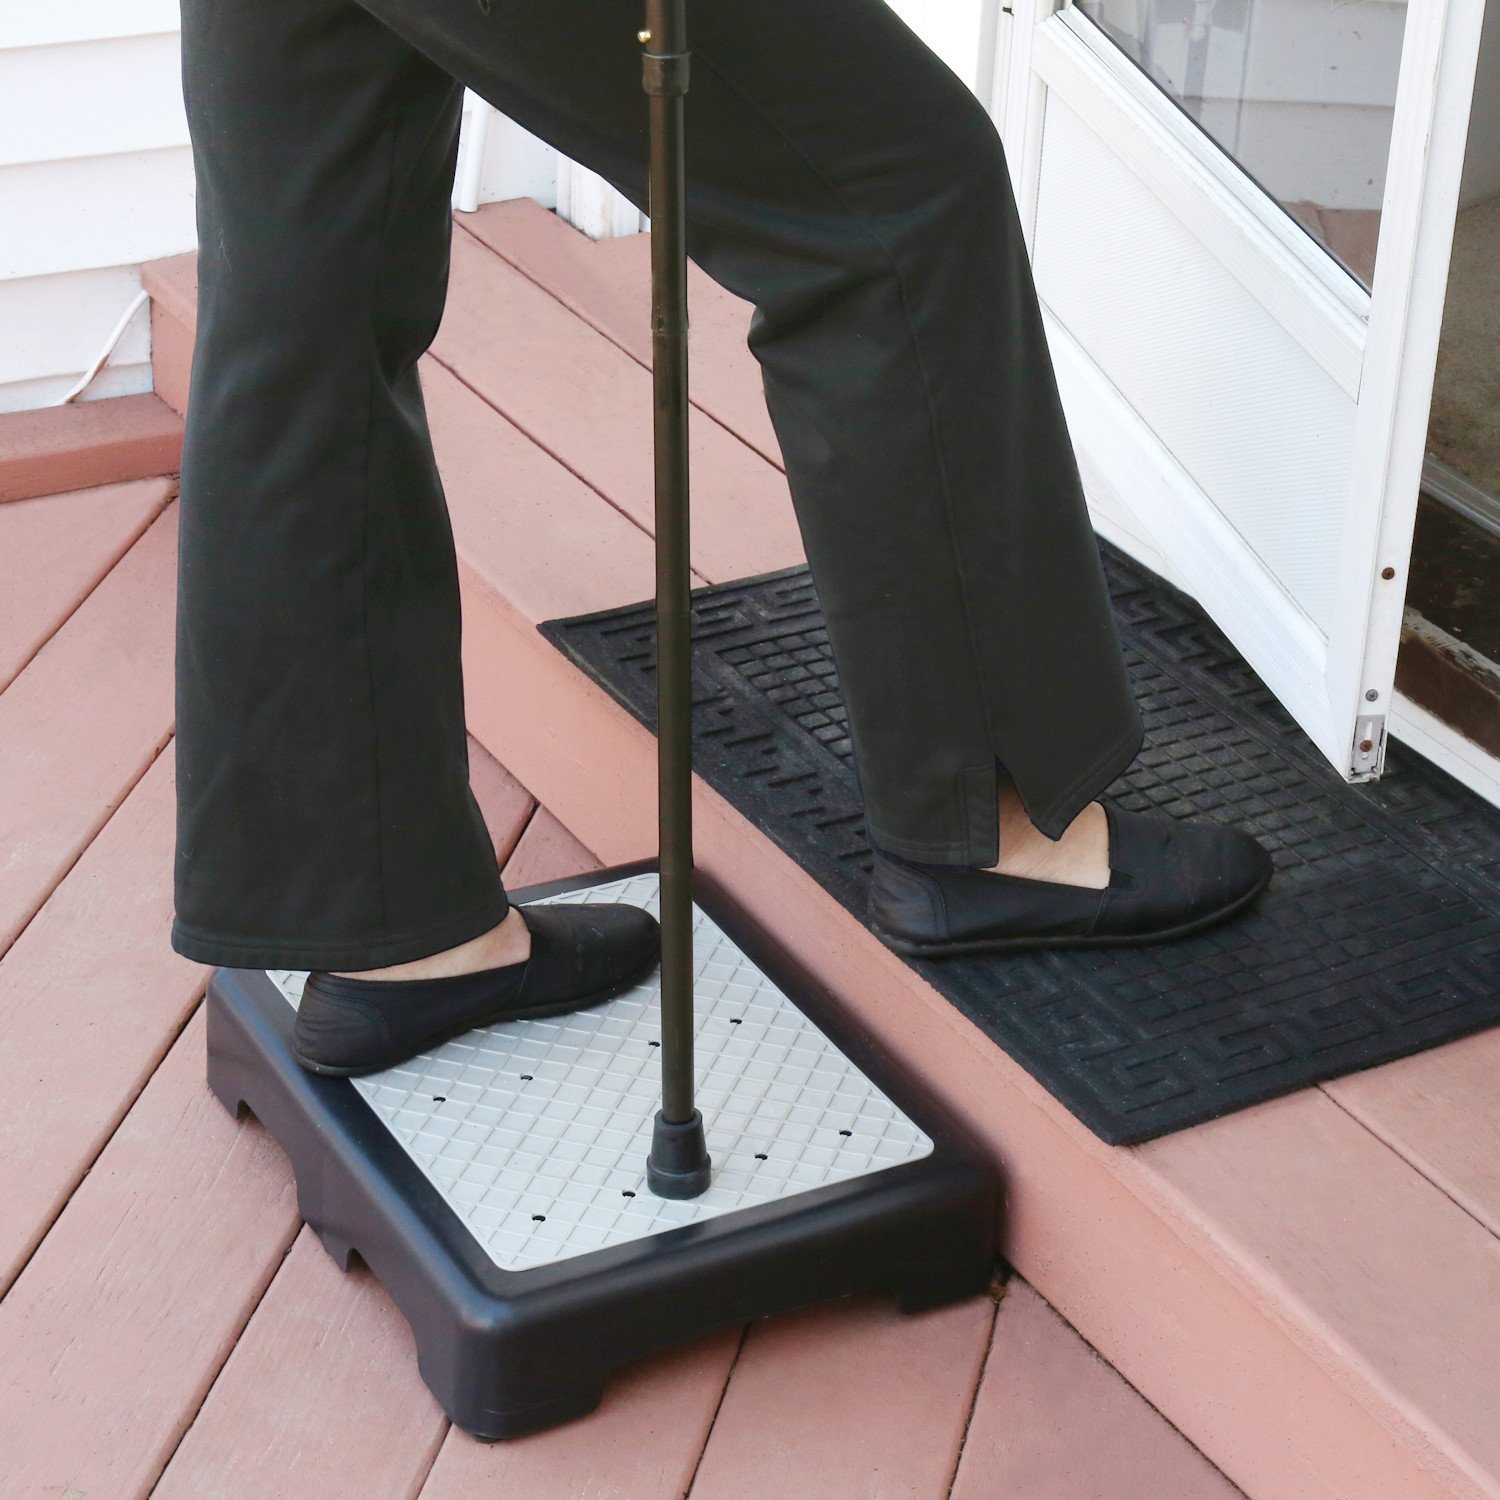 Support Plus Indoor/Outdoor Riser Step 3 1/2'' High - Non-Slip All Weather Top & Feet - Supports 400 lbs.